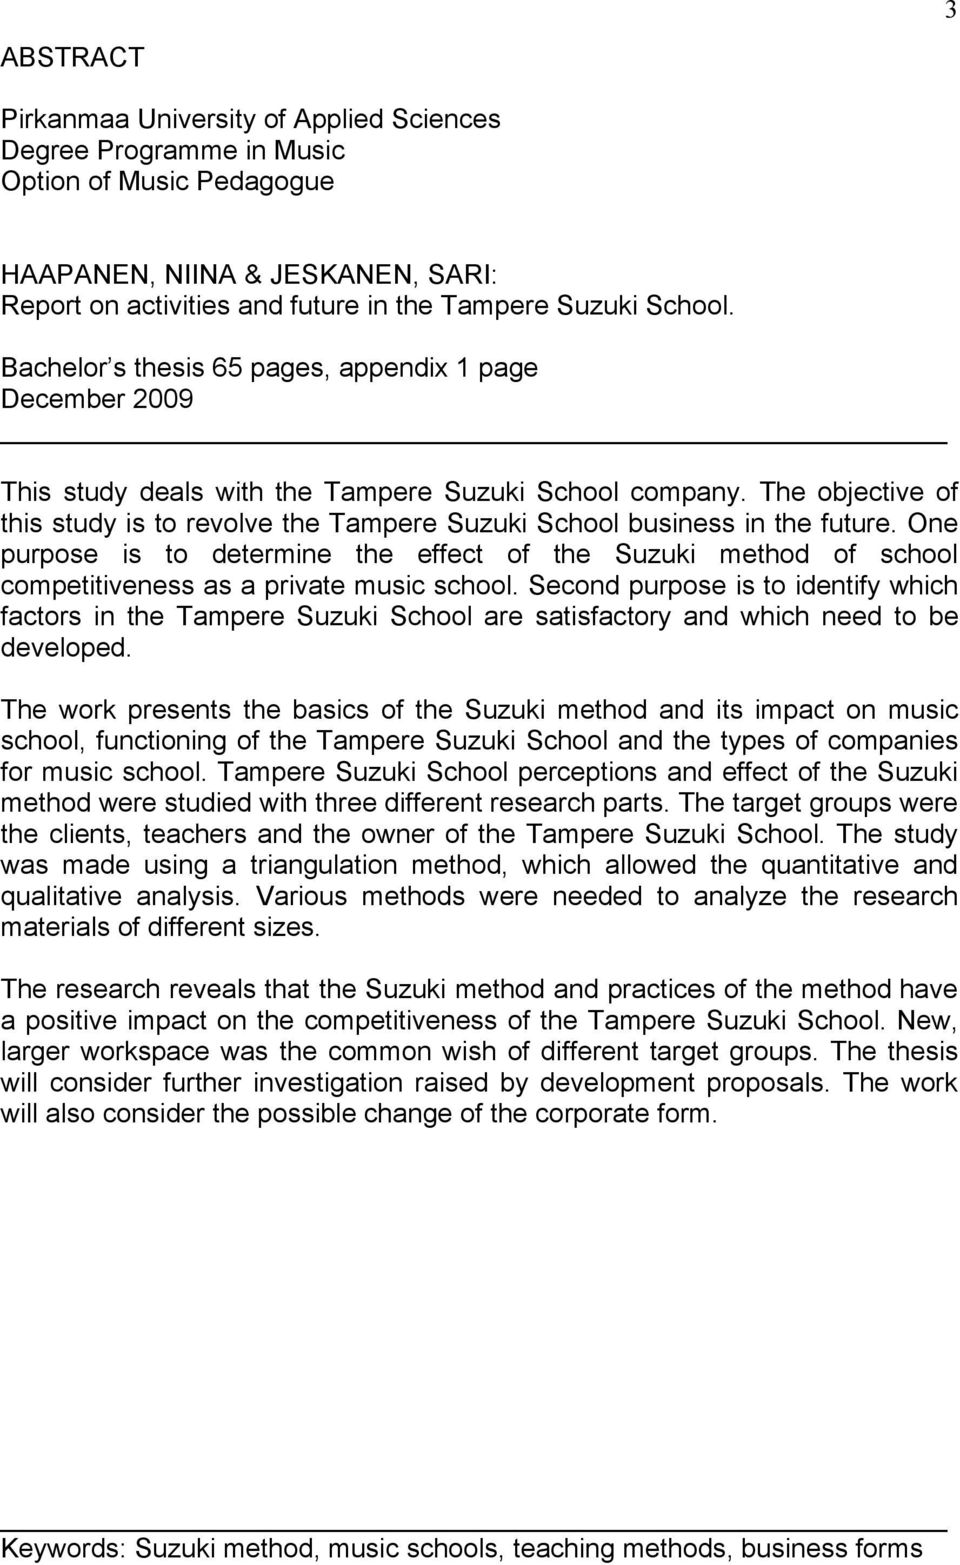 The objective of this study is to revolve the Tampere Suzuki School business in the future.